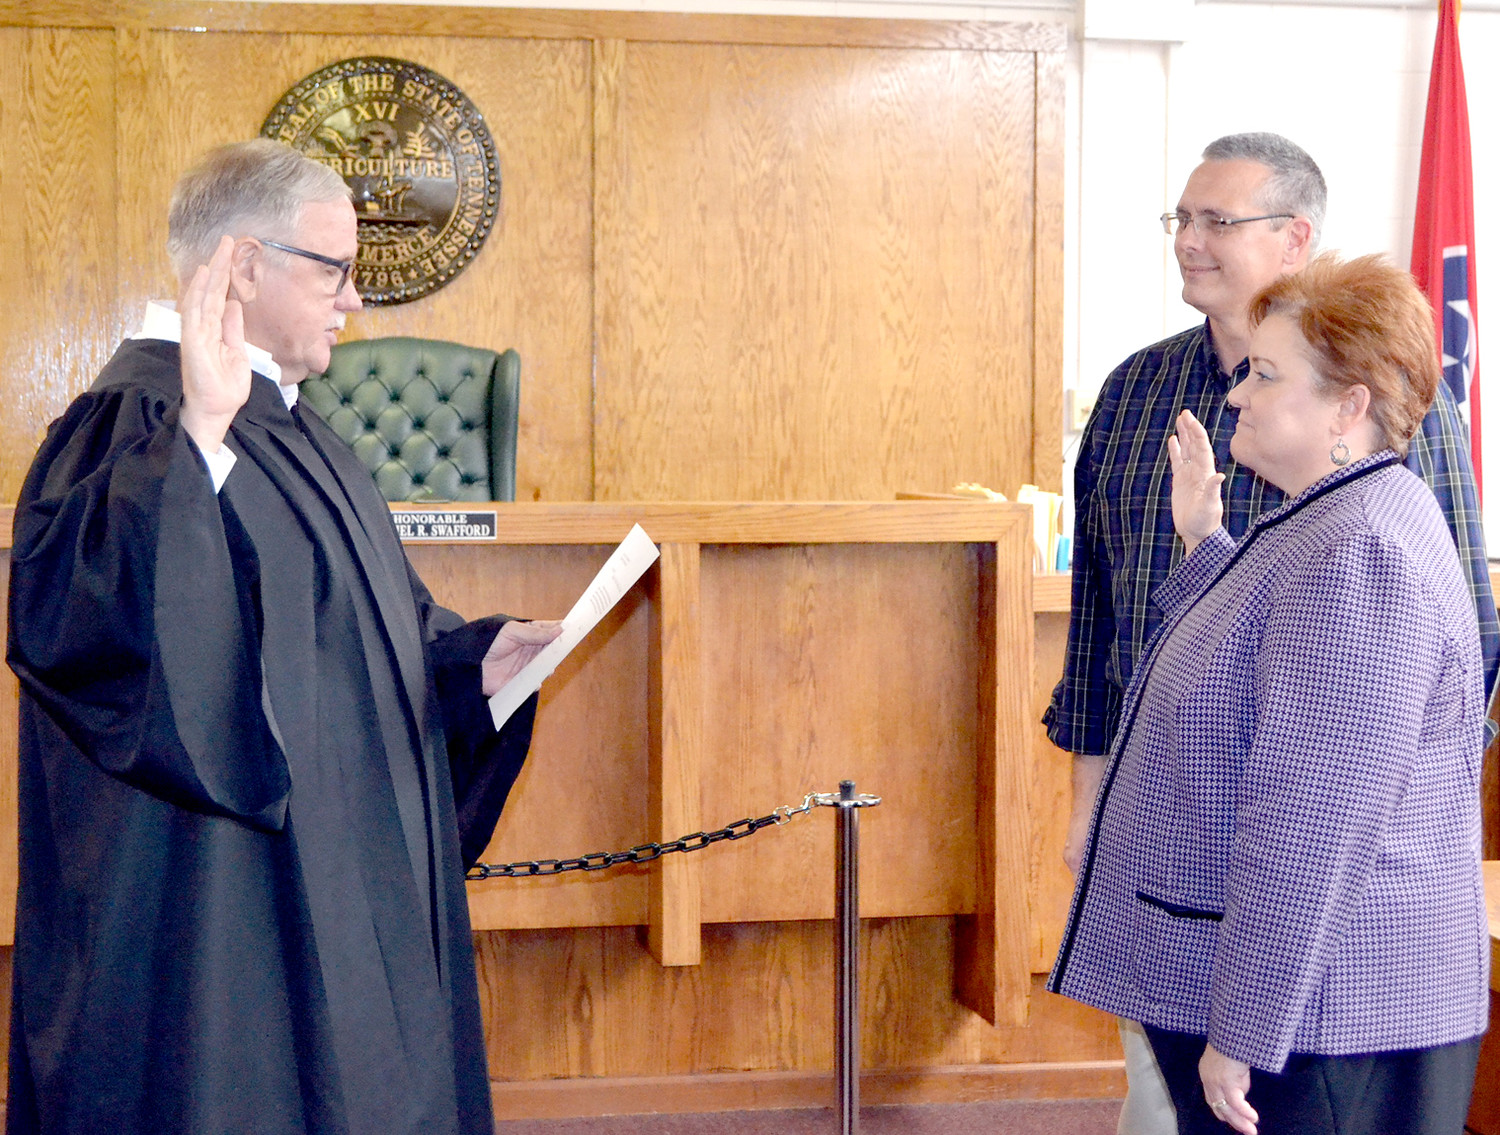 VICKIE TOWNE was recently sworn-in by Juvenile Court Judge Dan Swafford, left, as the new Bradley County Juvenile Court director. With Towne is her husband, Doug.